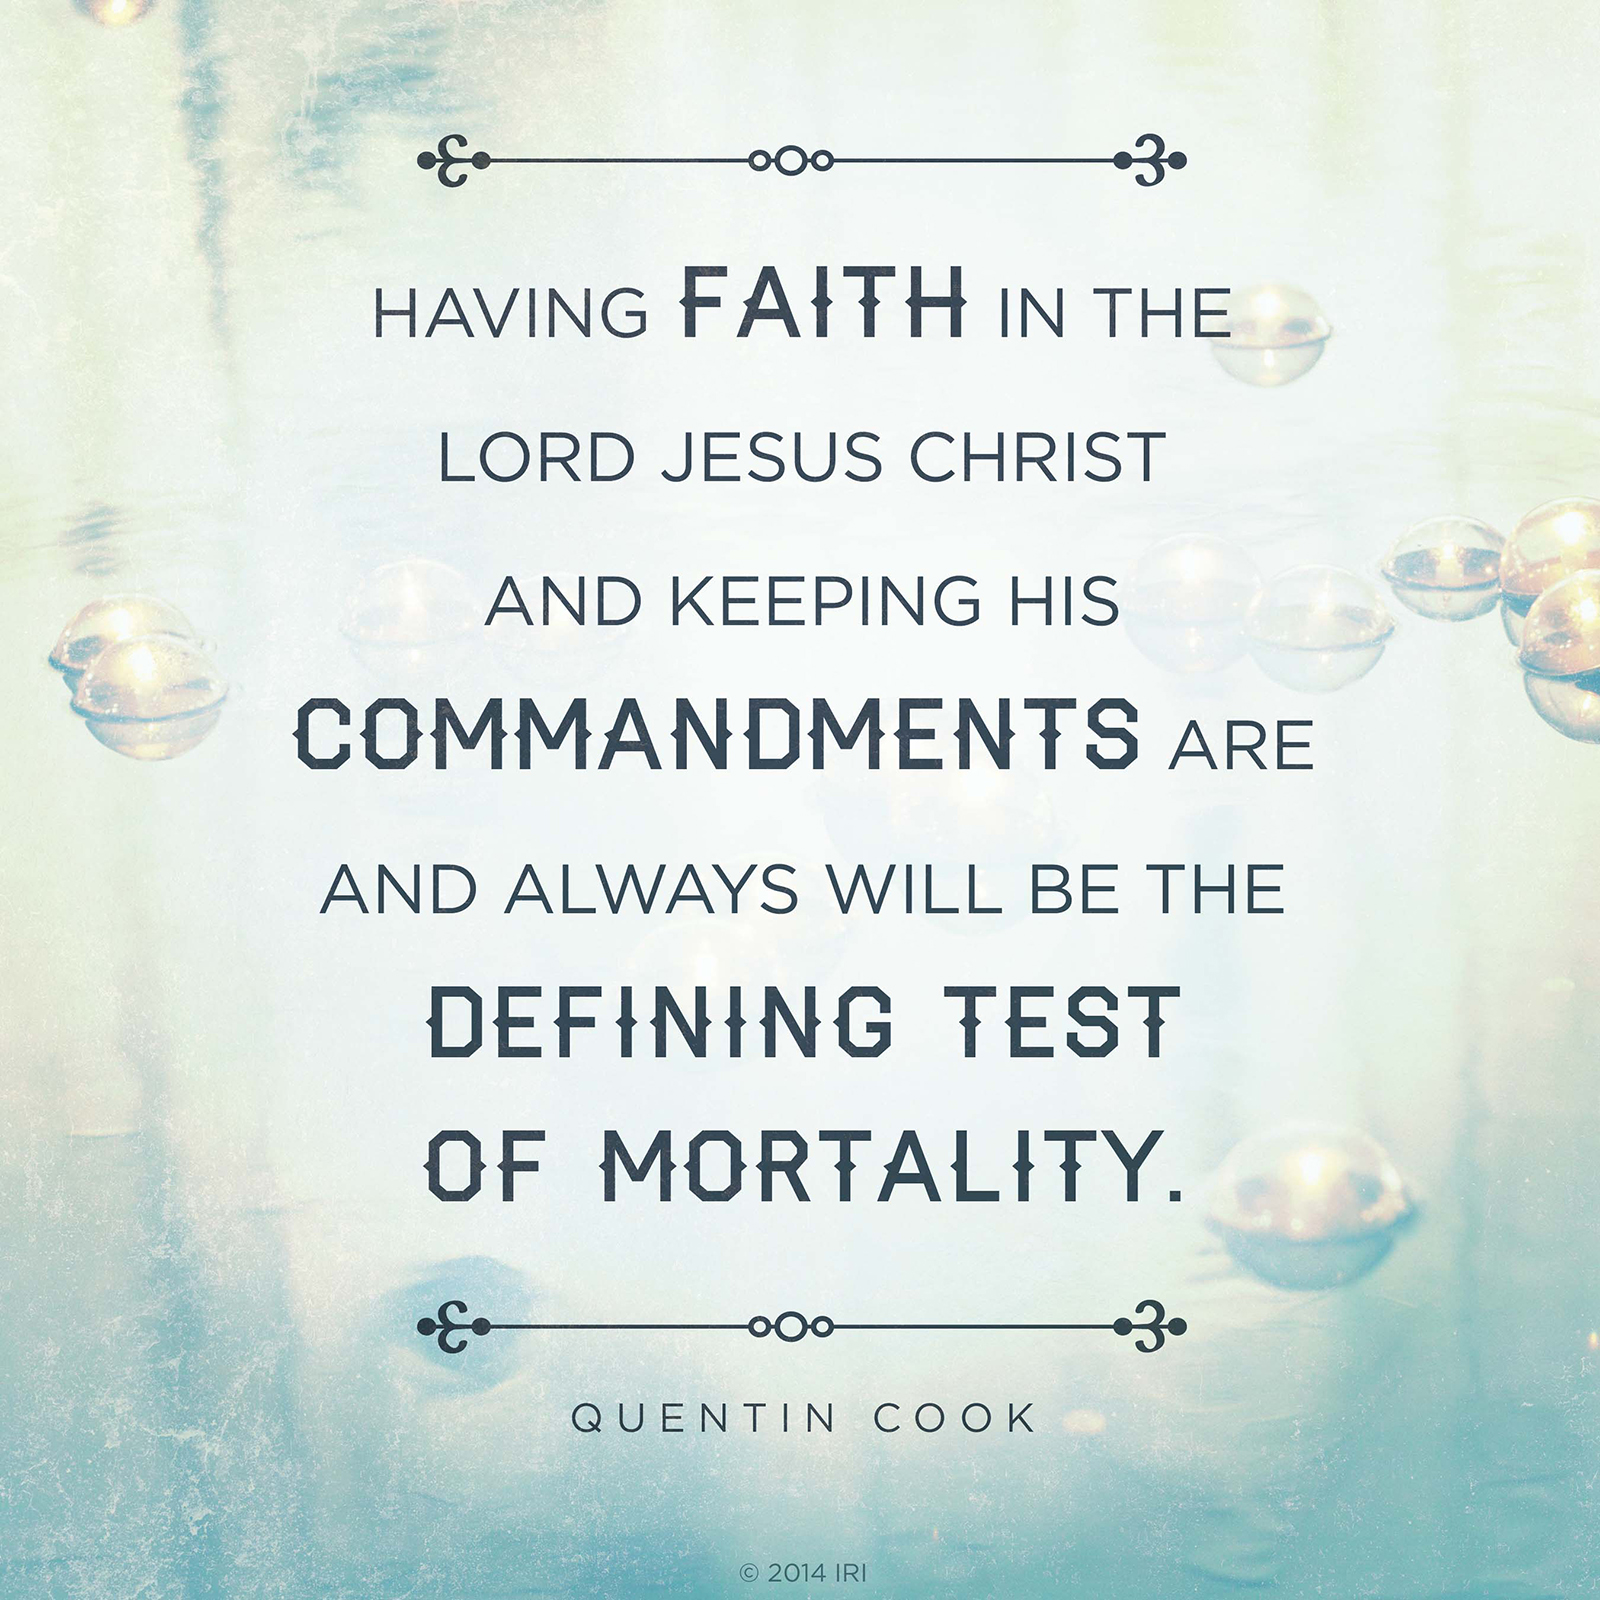 Jesus Is Lord Quotes And Images: Defining Test Of Mortality